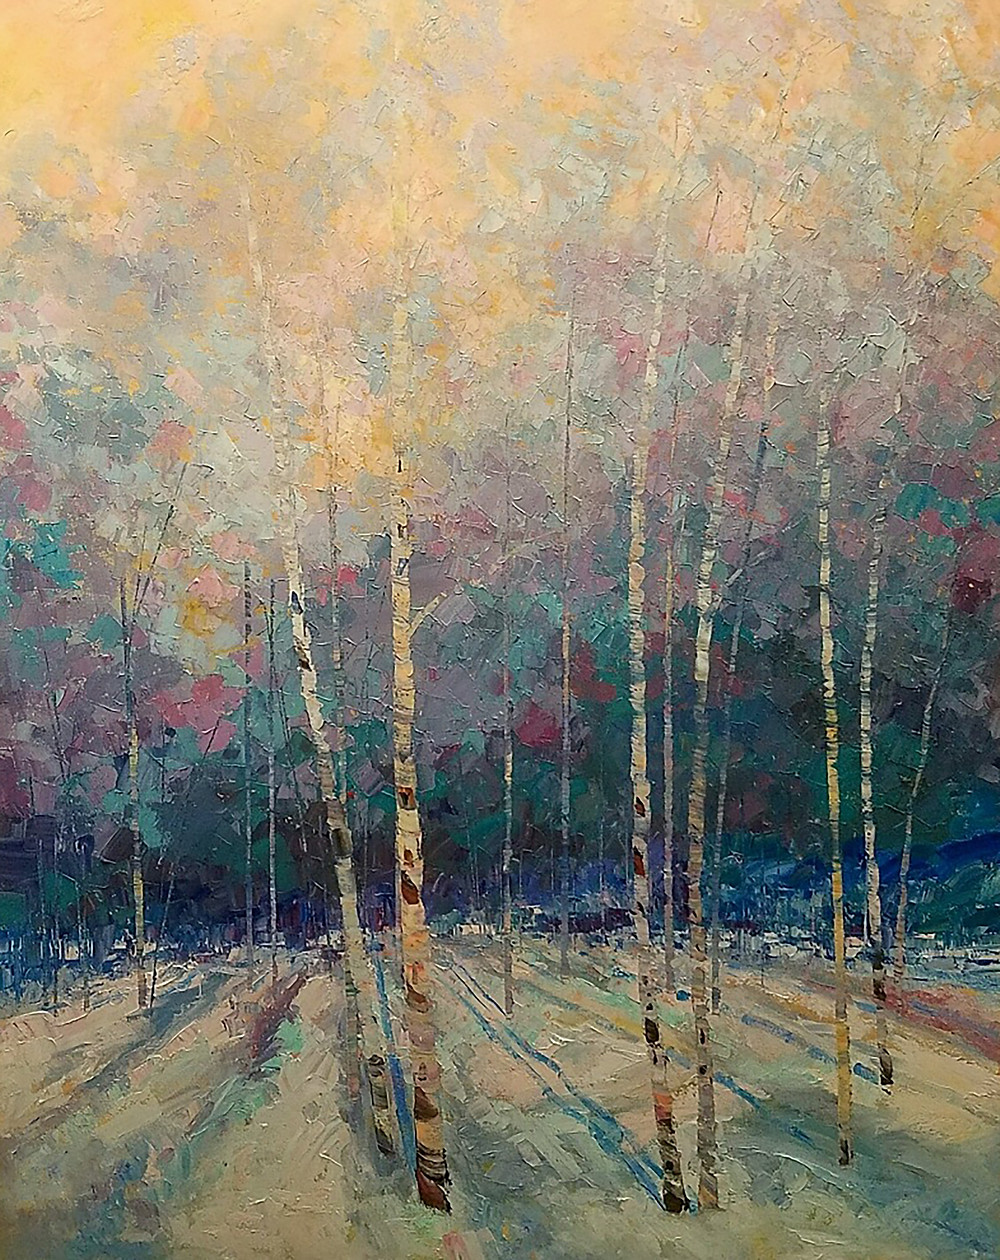 Promised Light 60 x 48 inches